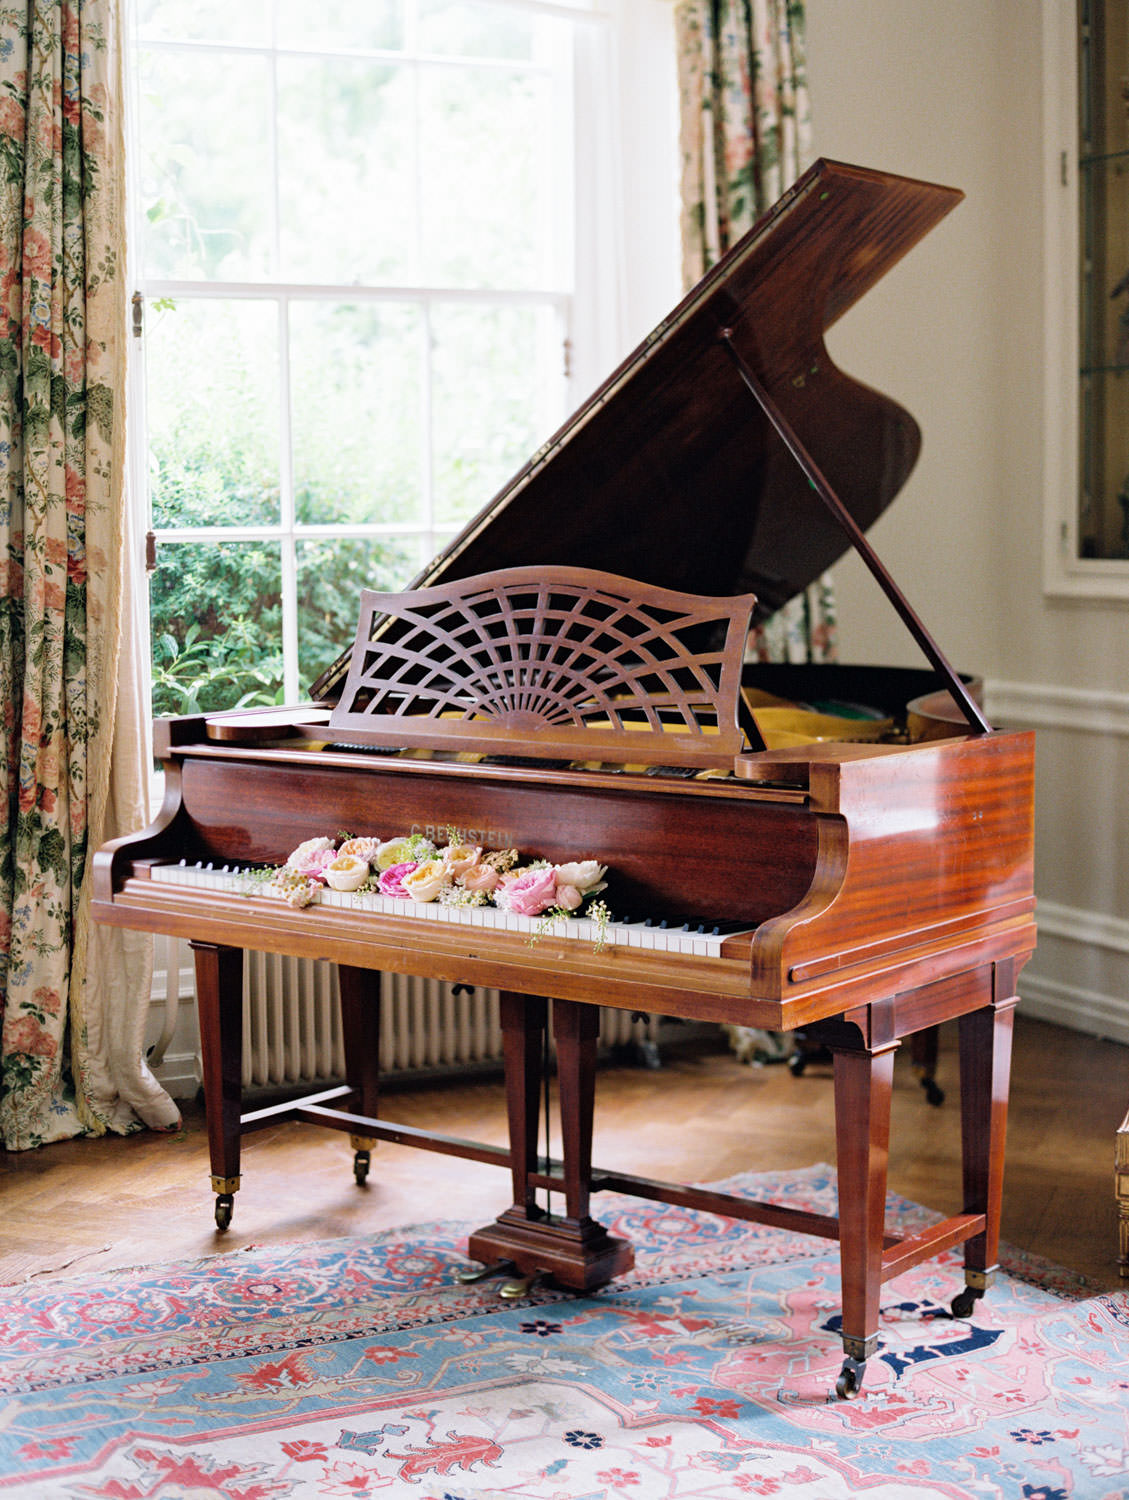 Piano styled with roses on the keys by Social and Co Events photographed by Cavin Elizabeth Photography on film